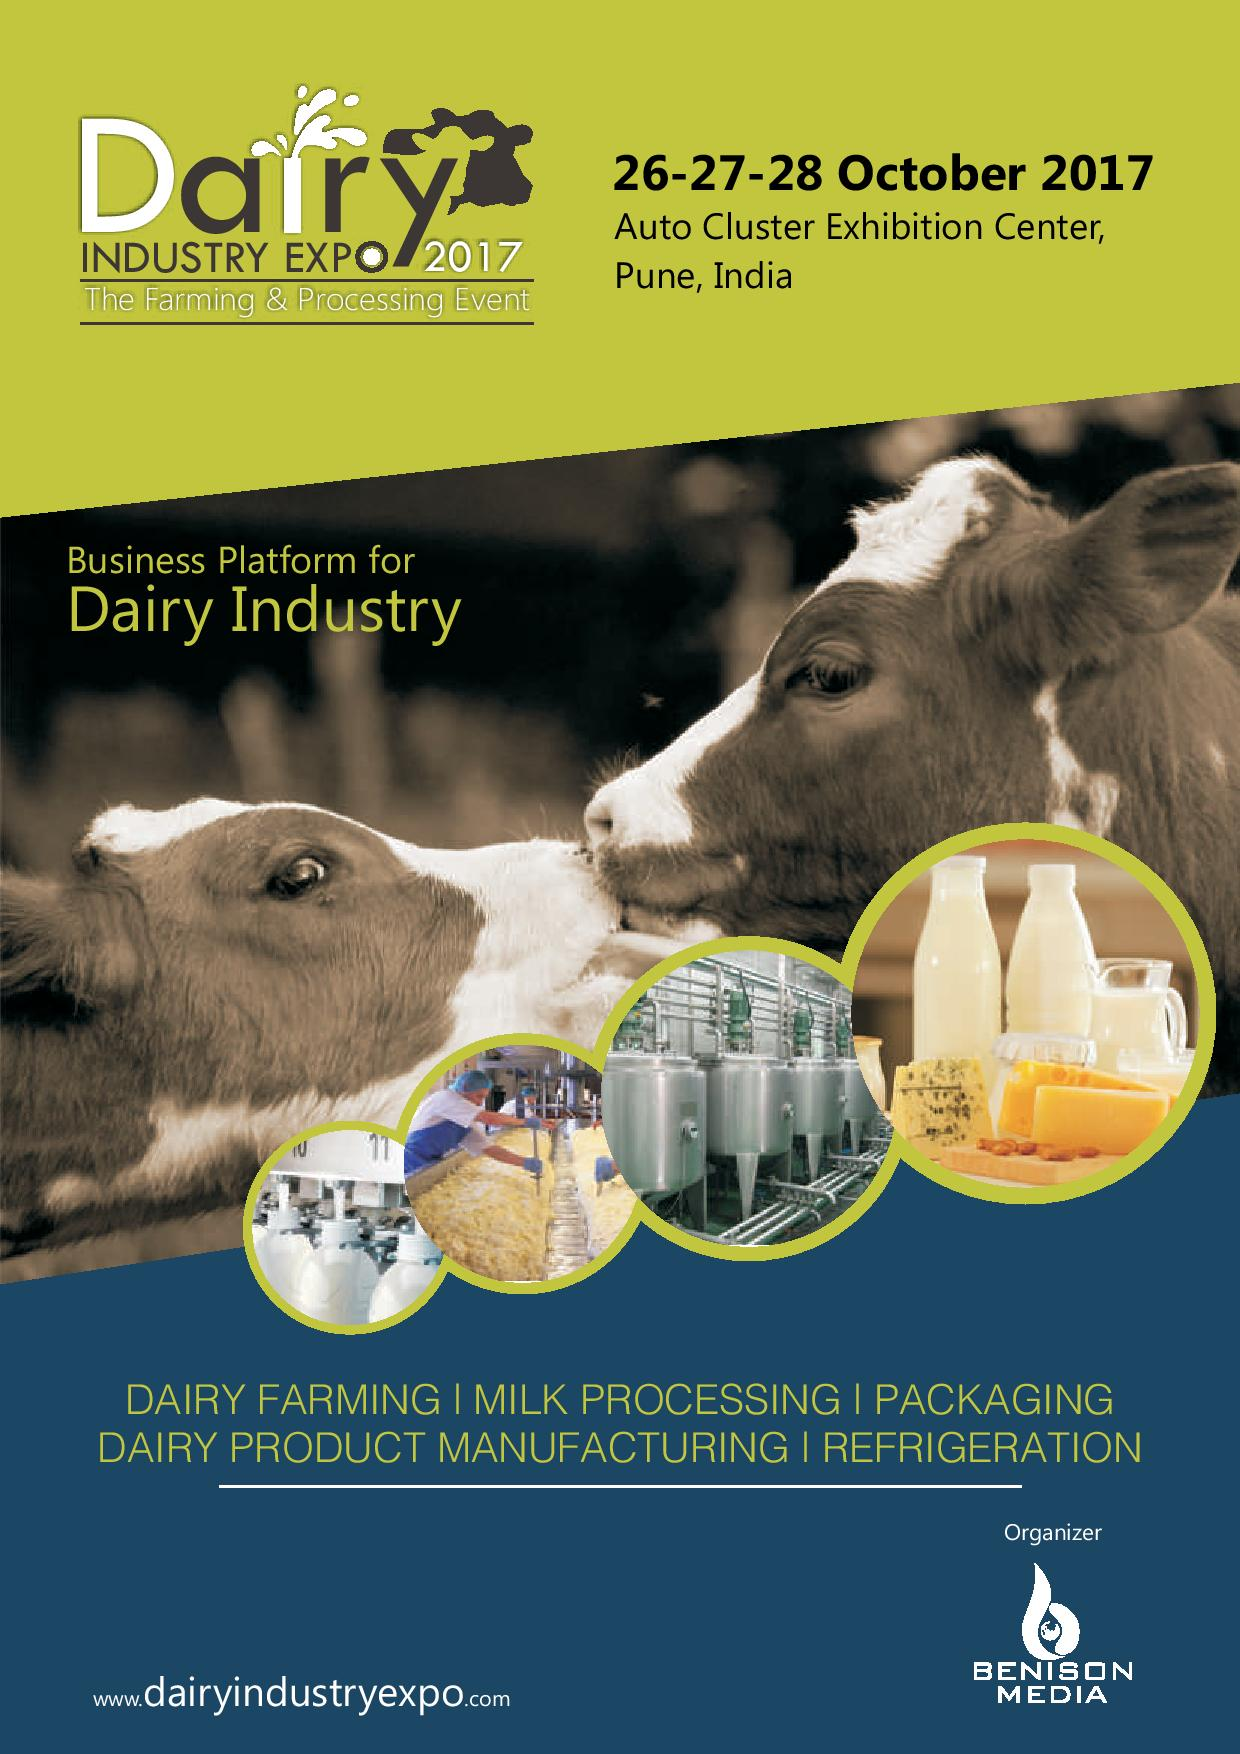 Exhibition Stall Booking Form : Dairy industry expo  oct pune india